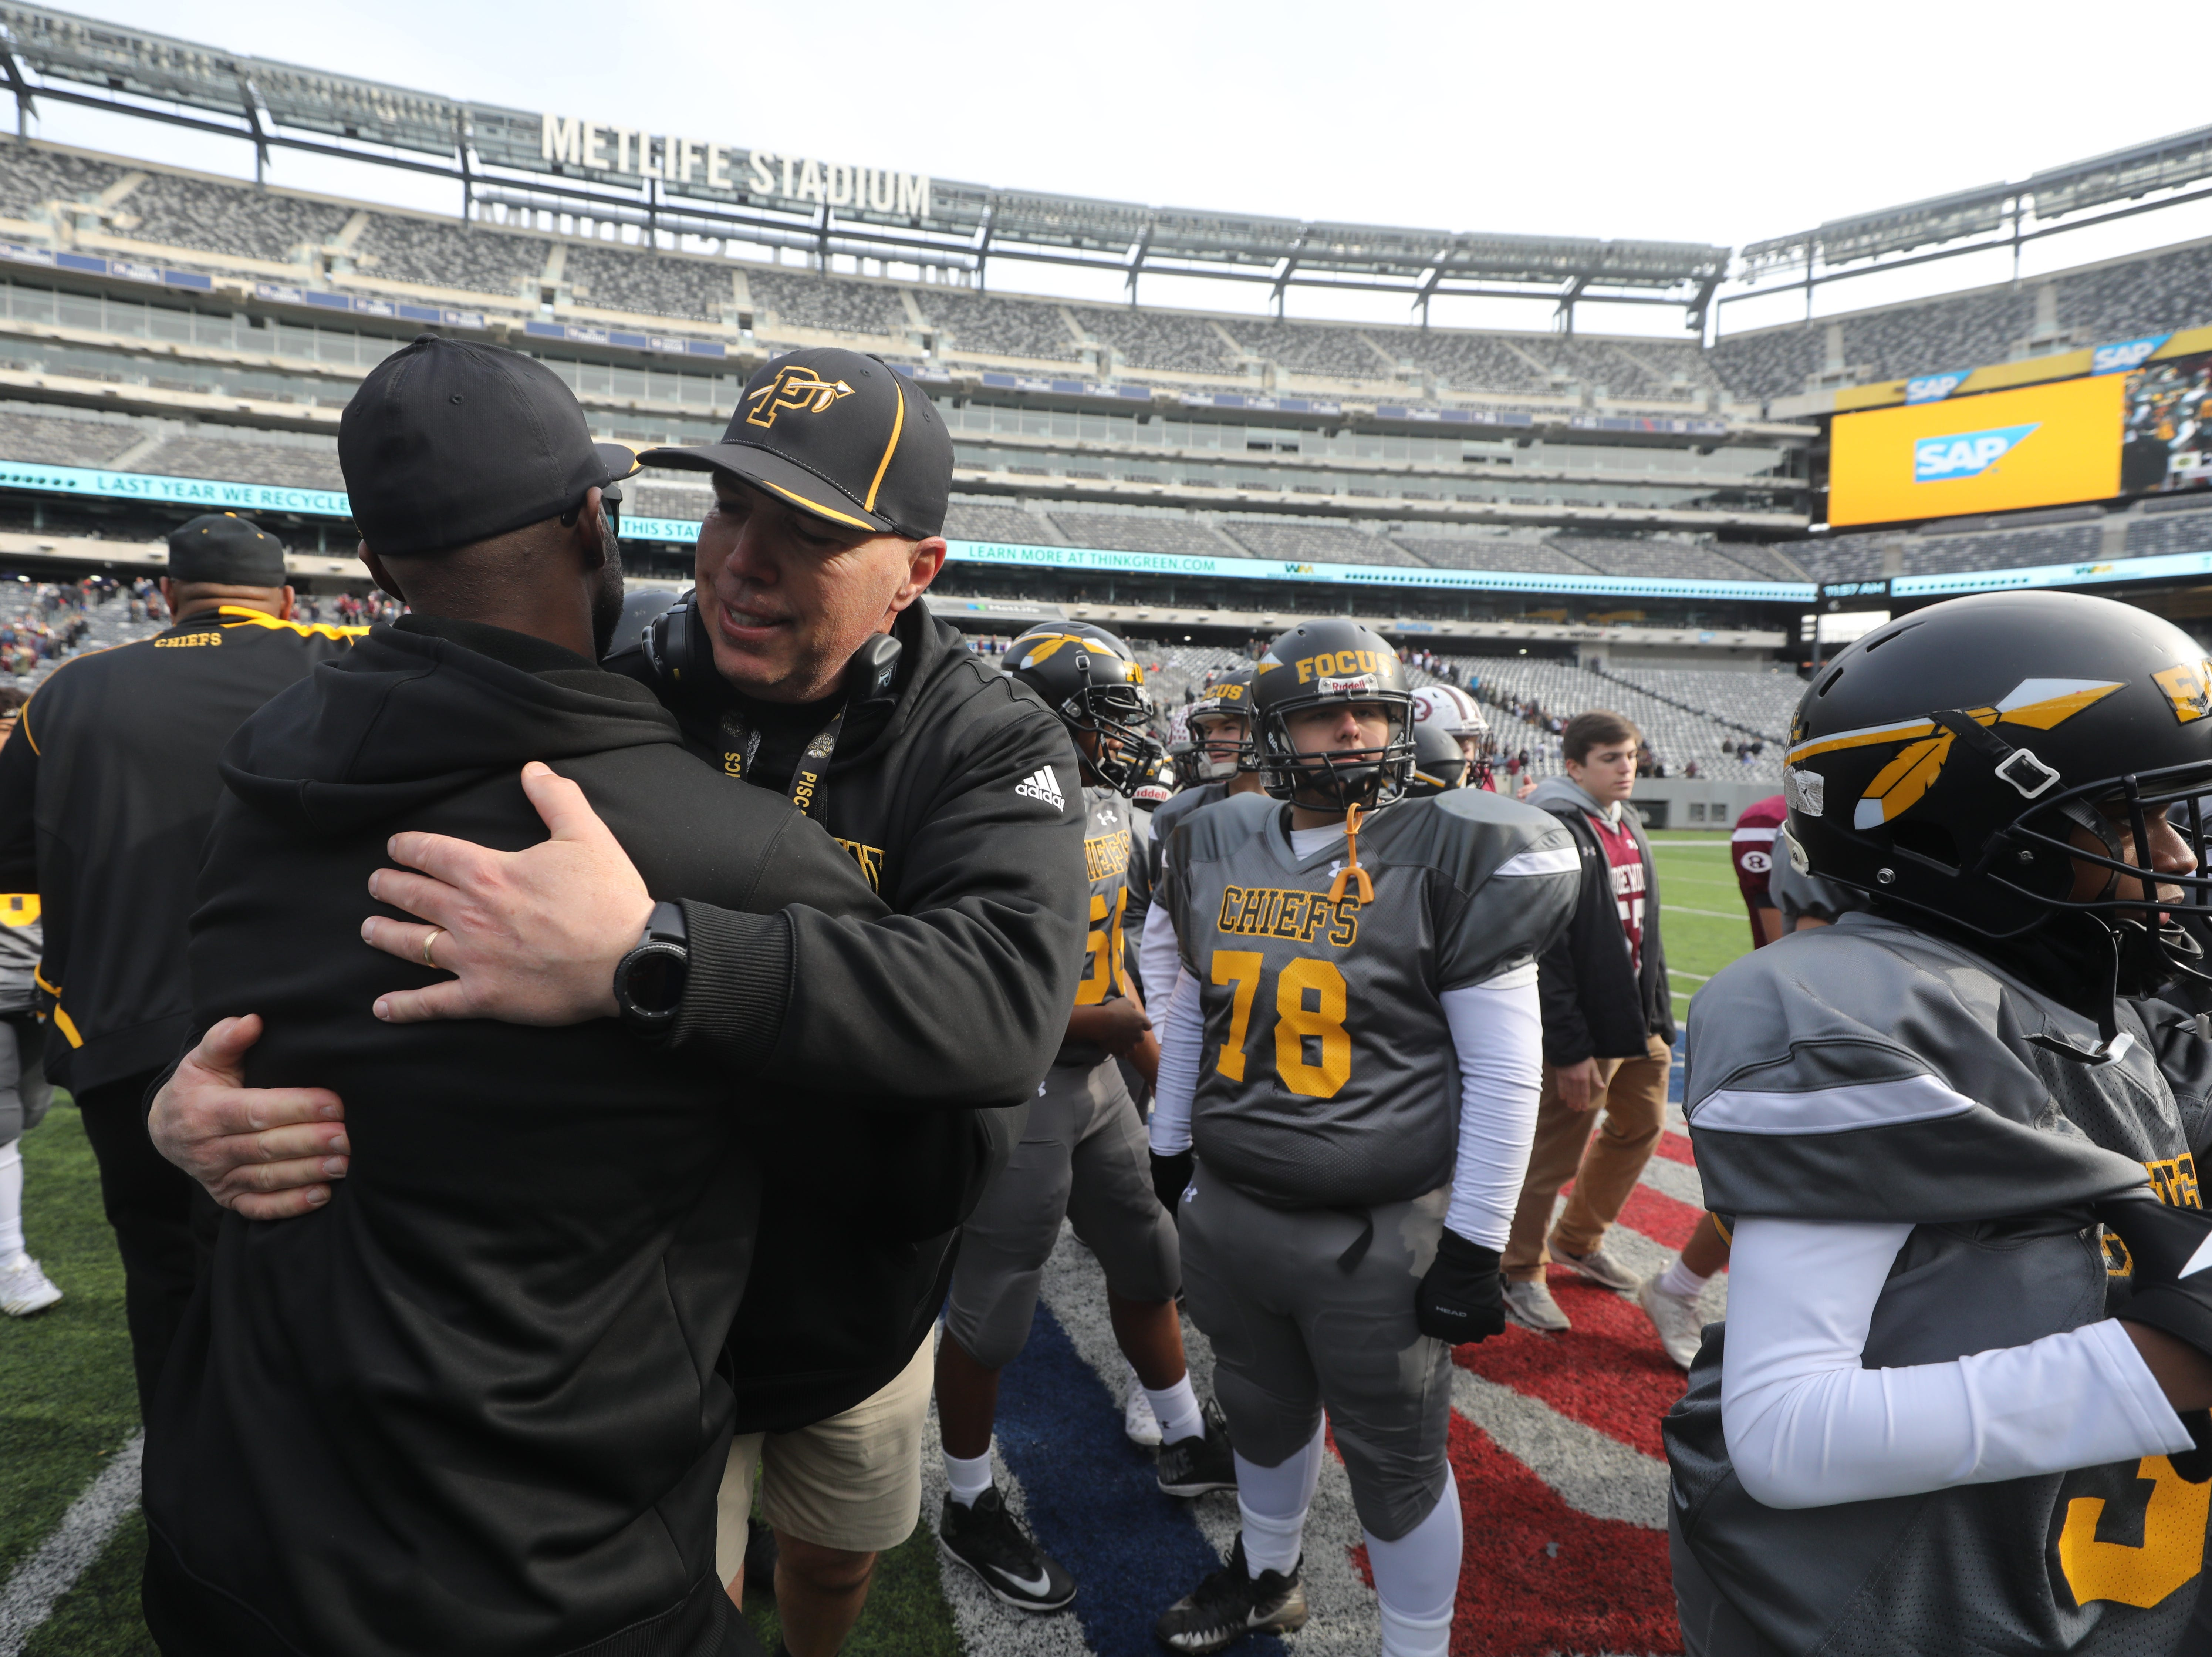 Piscataway head coach Daniel Higgins celebrates with his coaches at the end of the game.